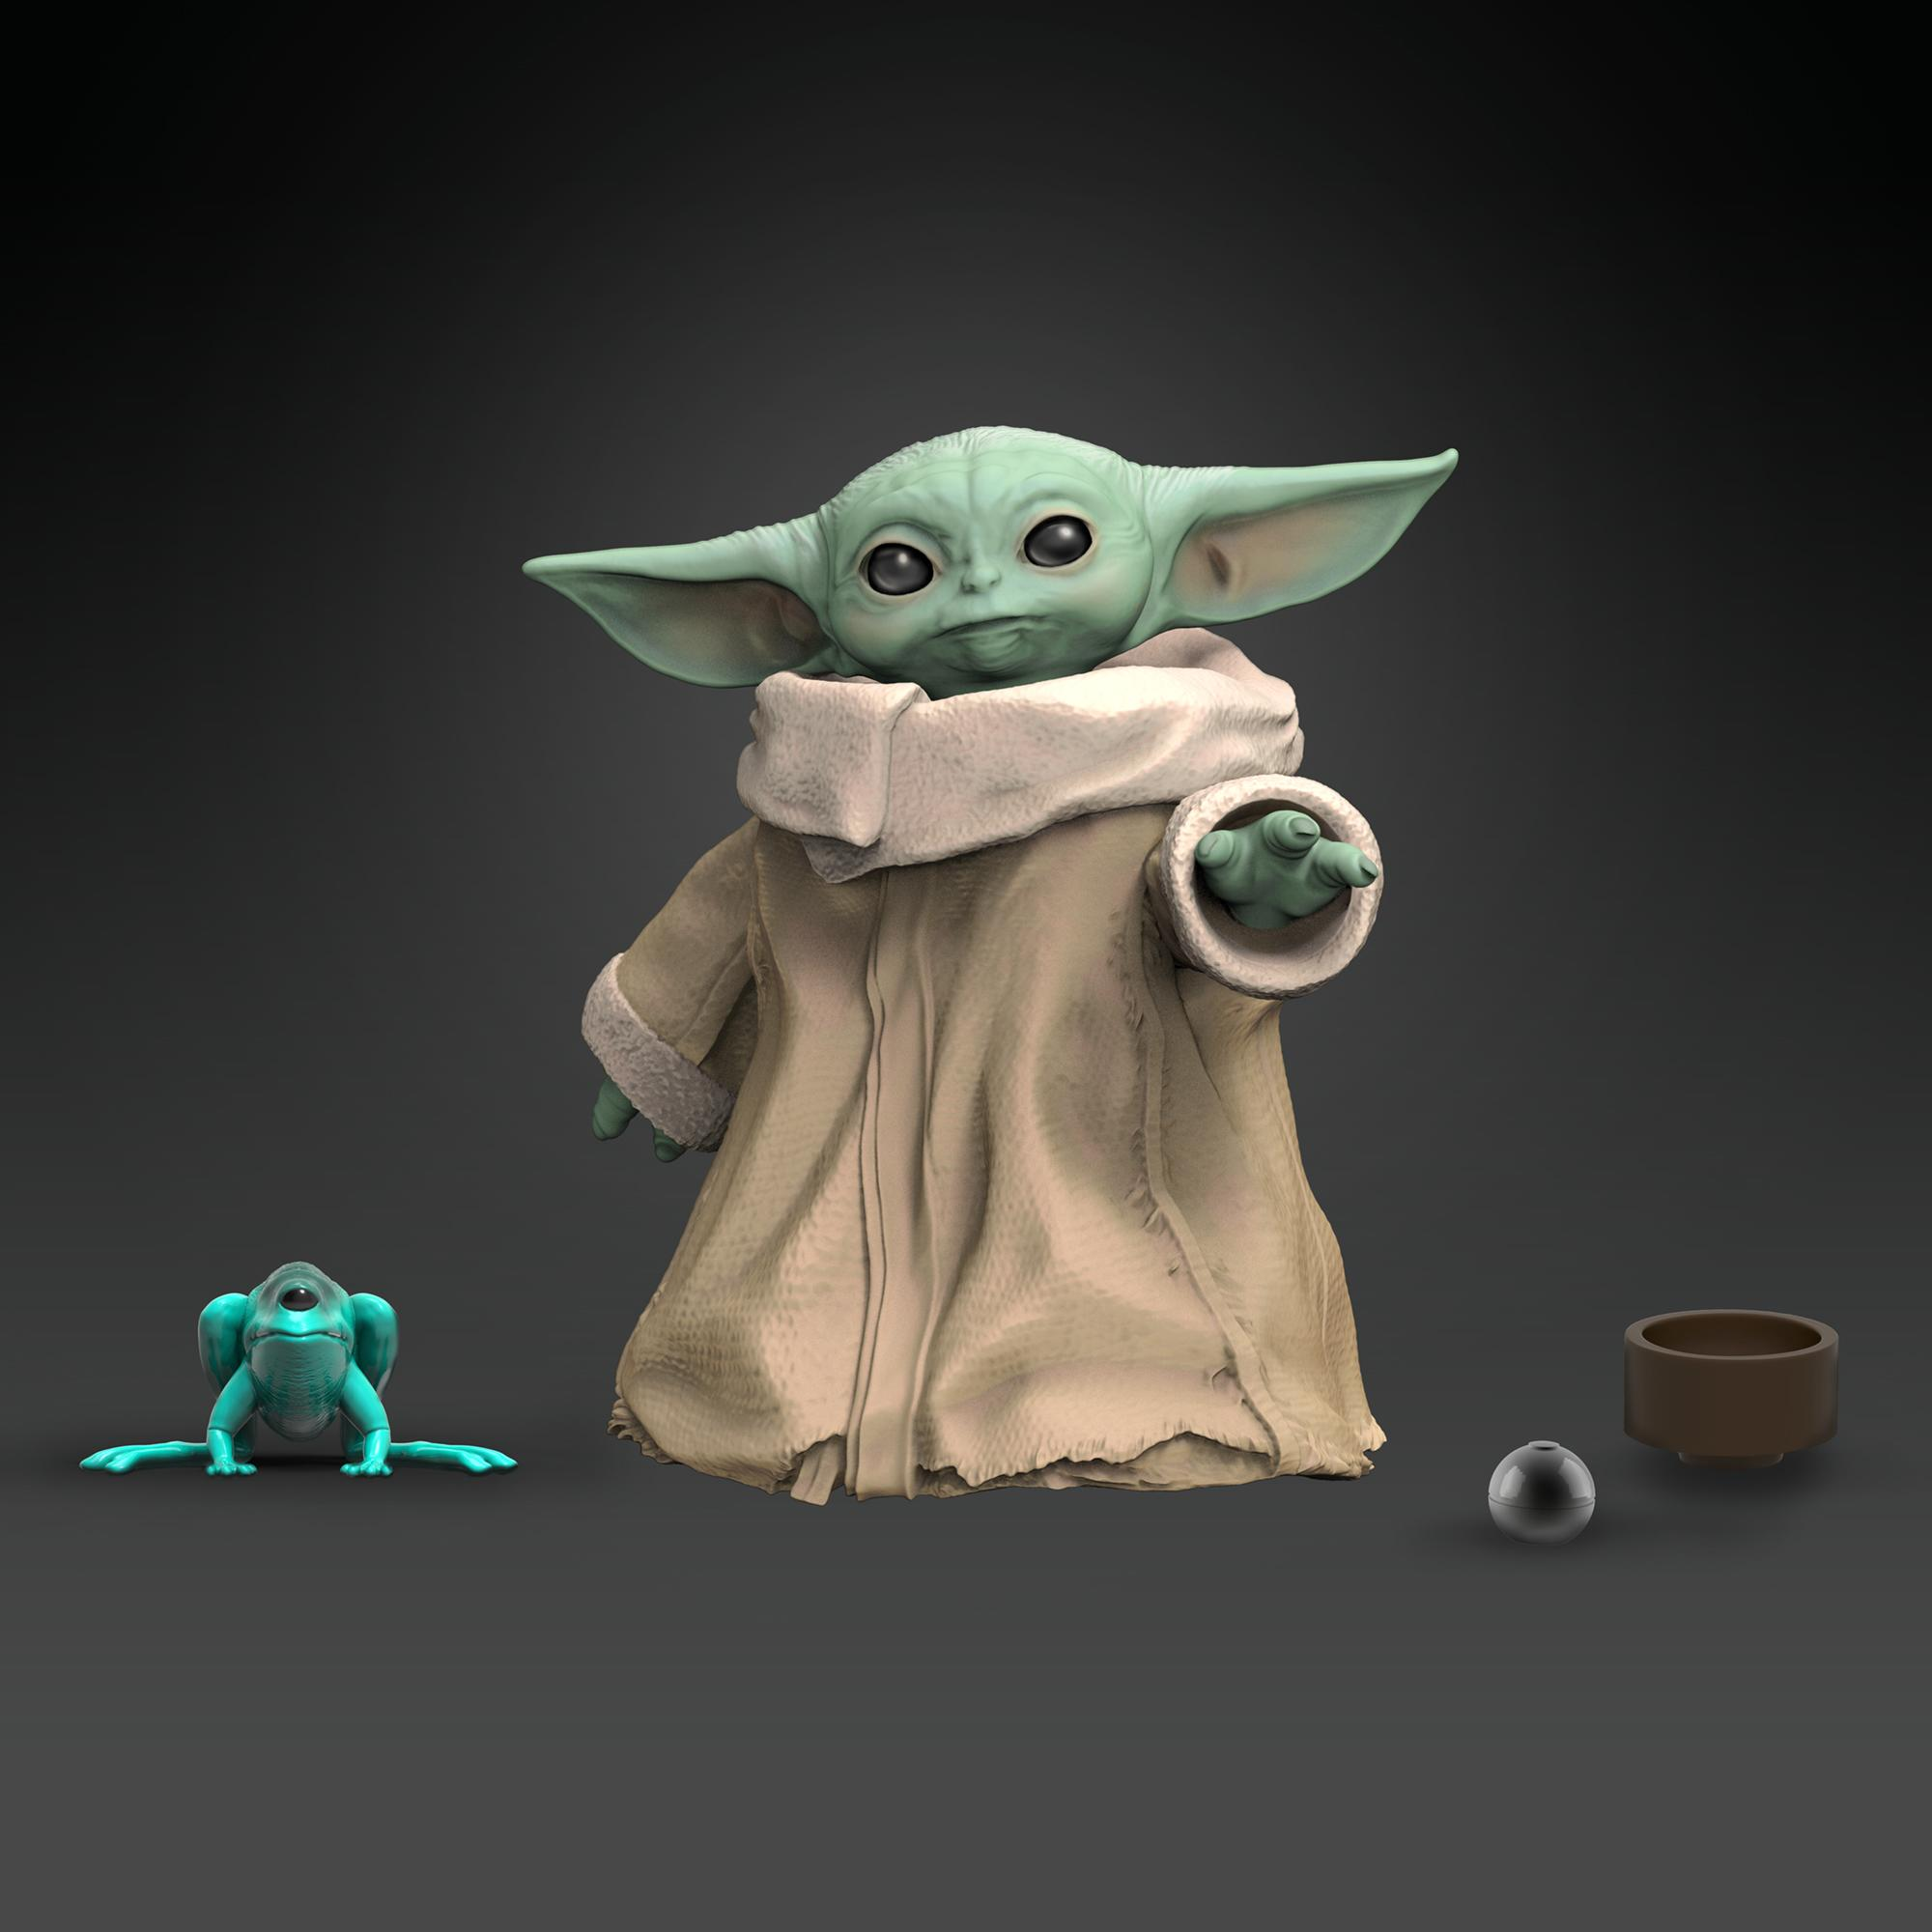 How to get the adorable Baby Yoda merchandise that you've been waiting for